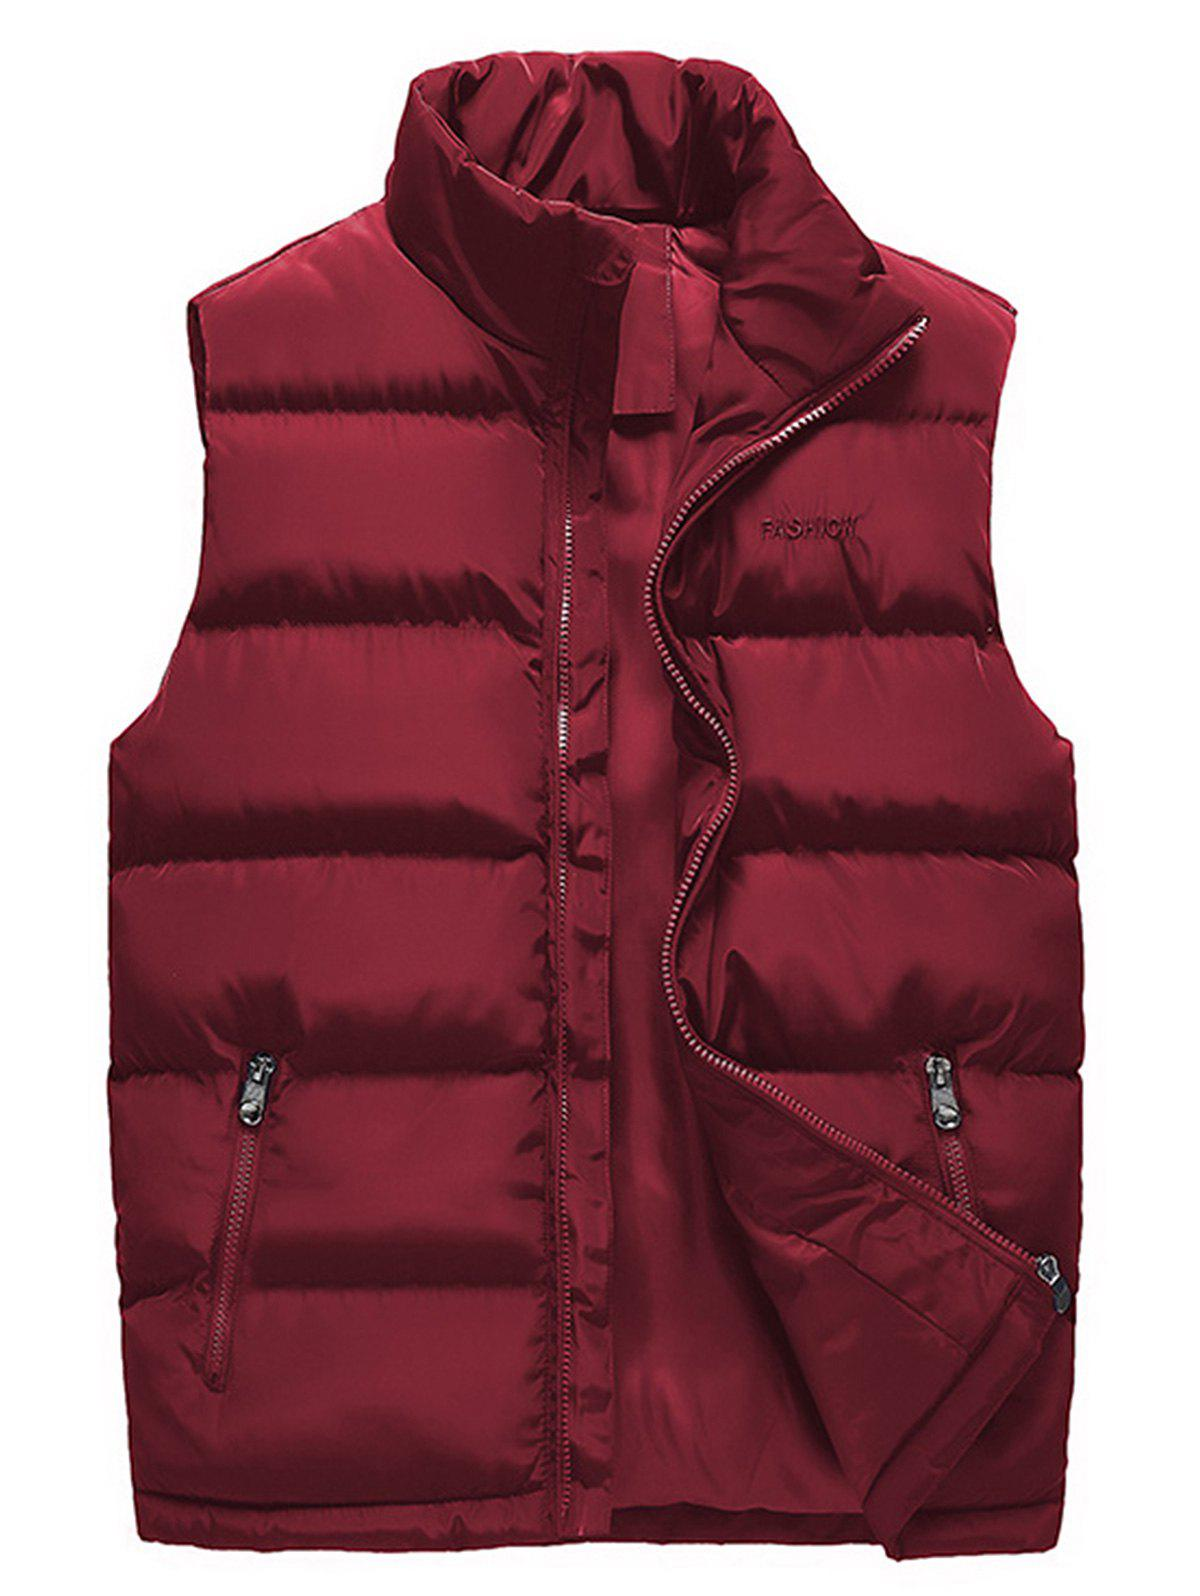 Zip Up - Gilet rembourré brodé - Rouge vineux 6XL